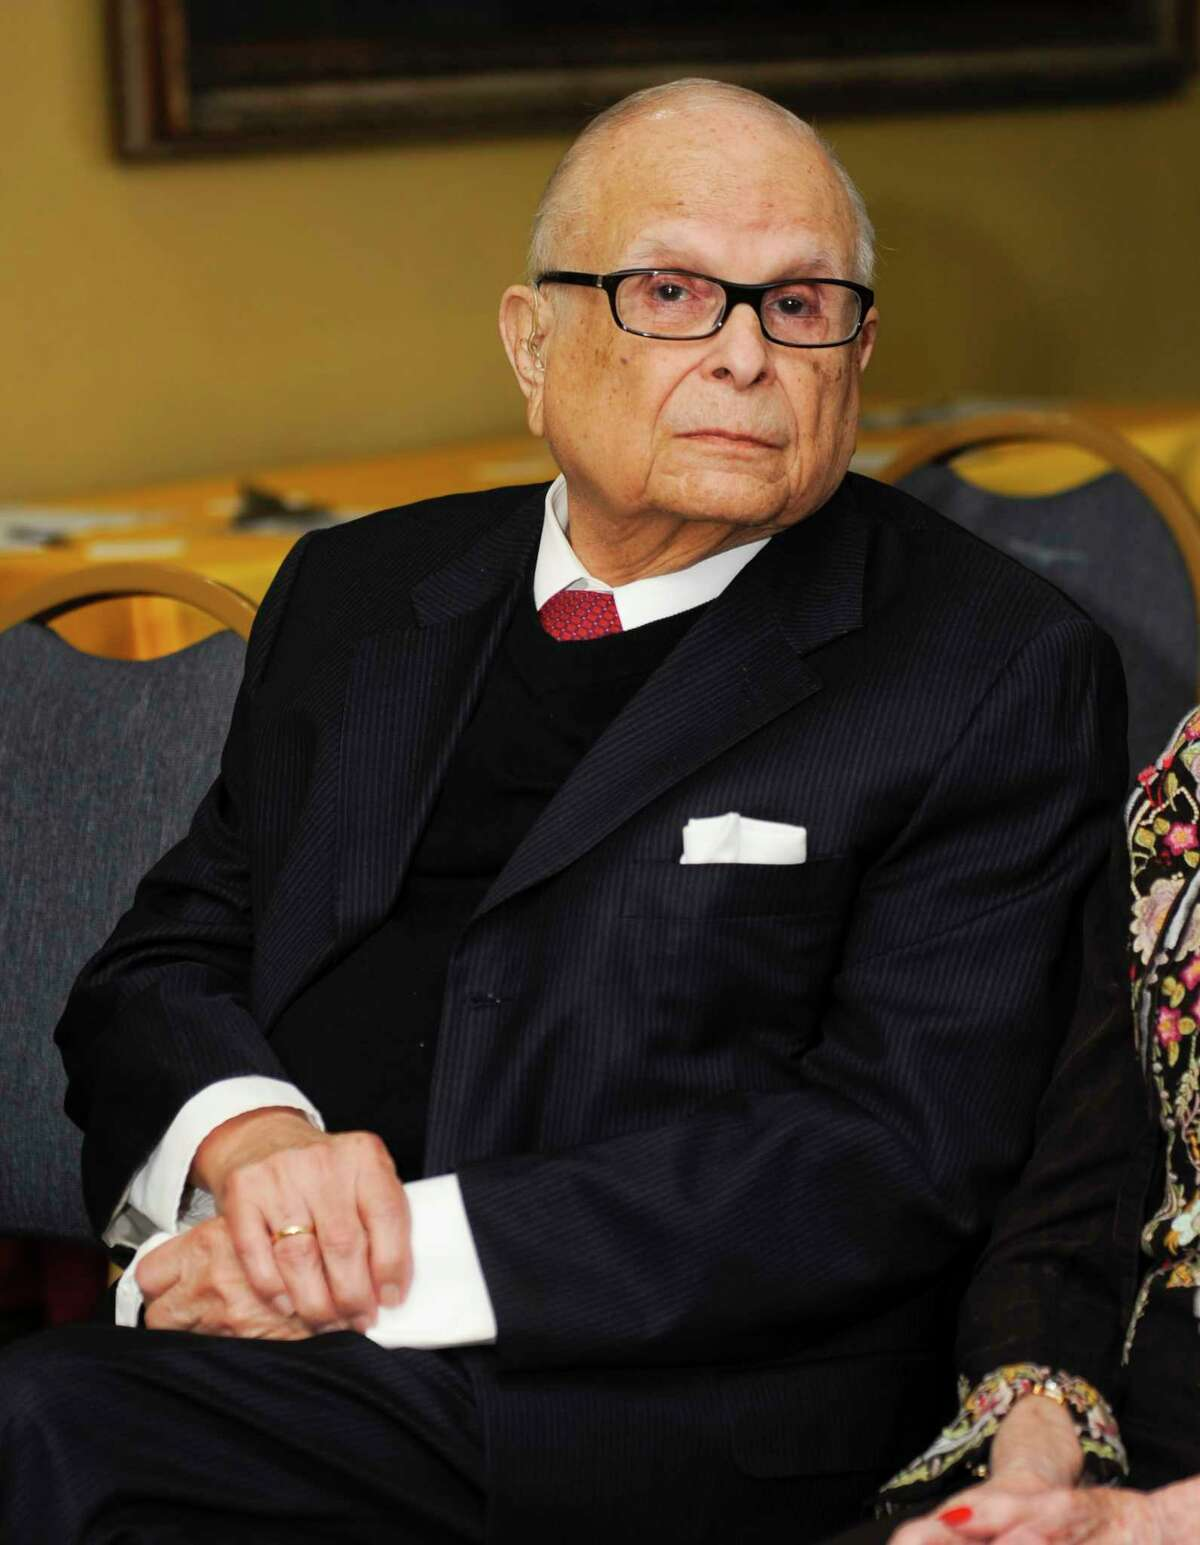 Joaquin Cigarroa Jr., a trailblazing doctor who served the Laredo area for over six decades, has died at the age of 94.